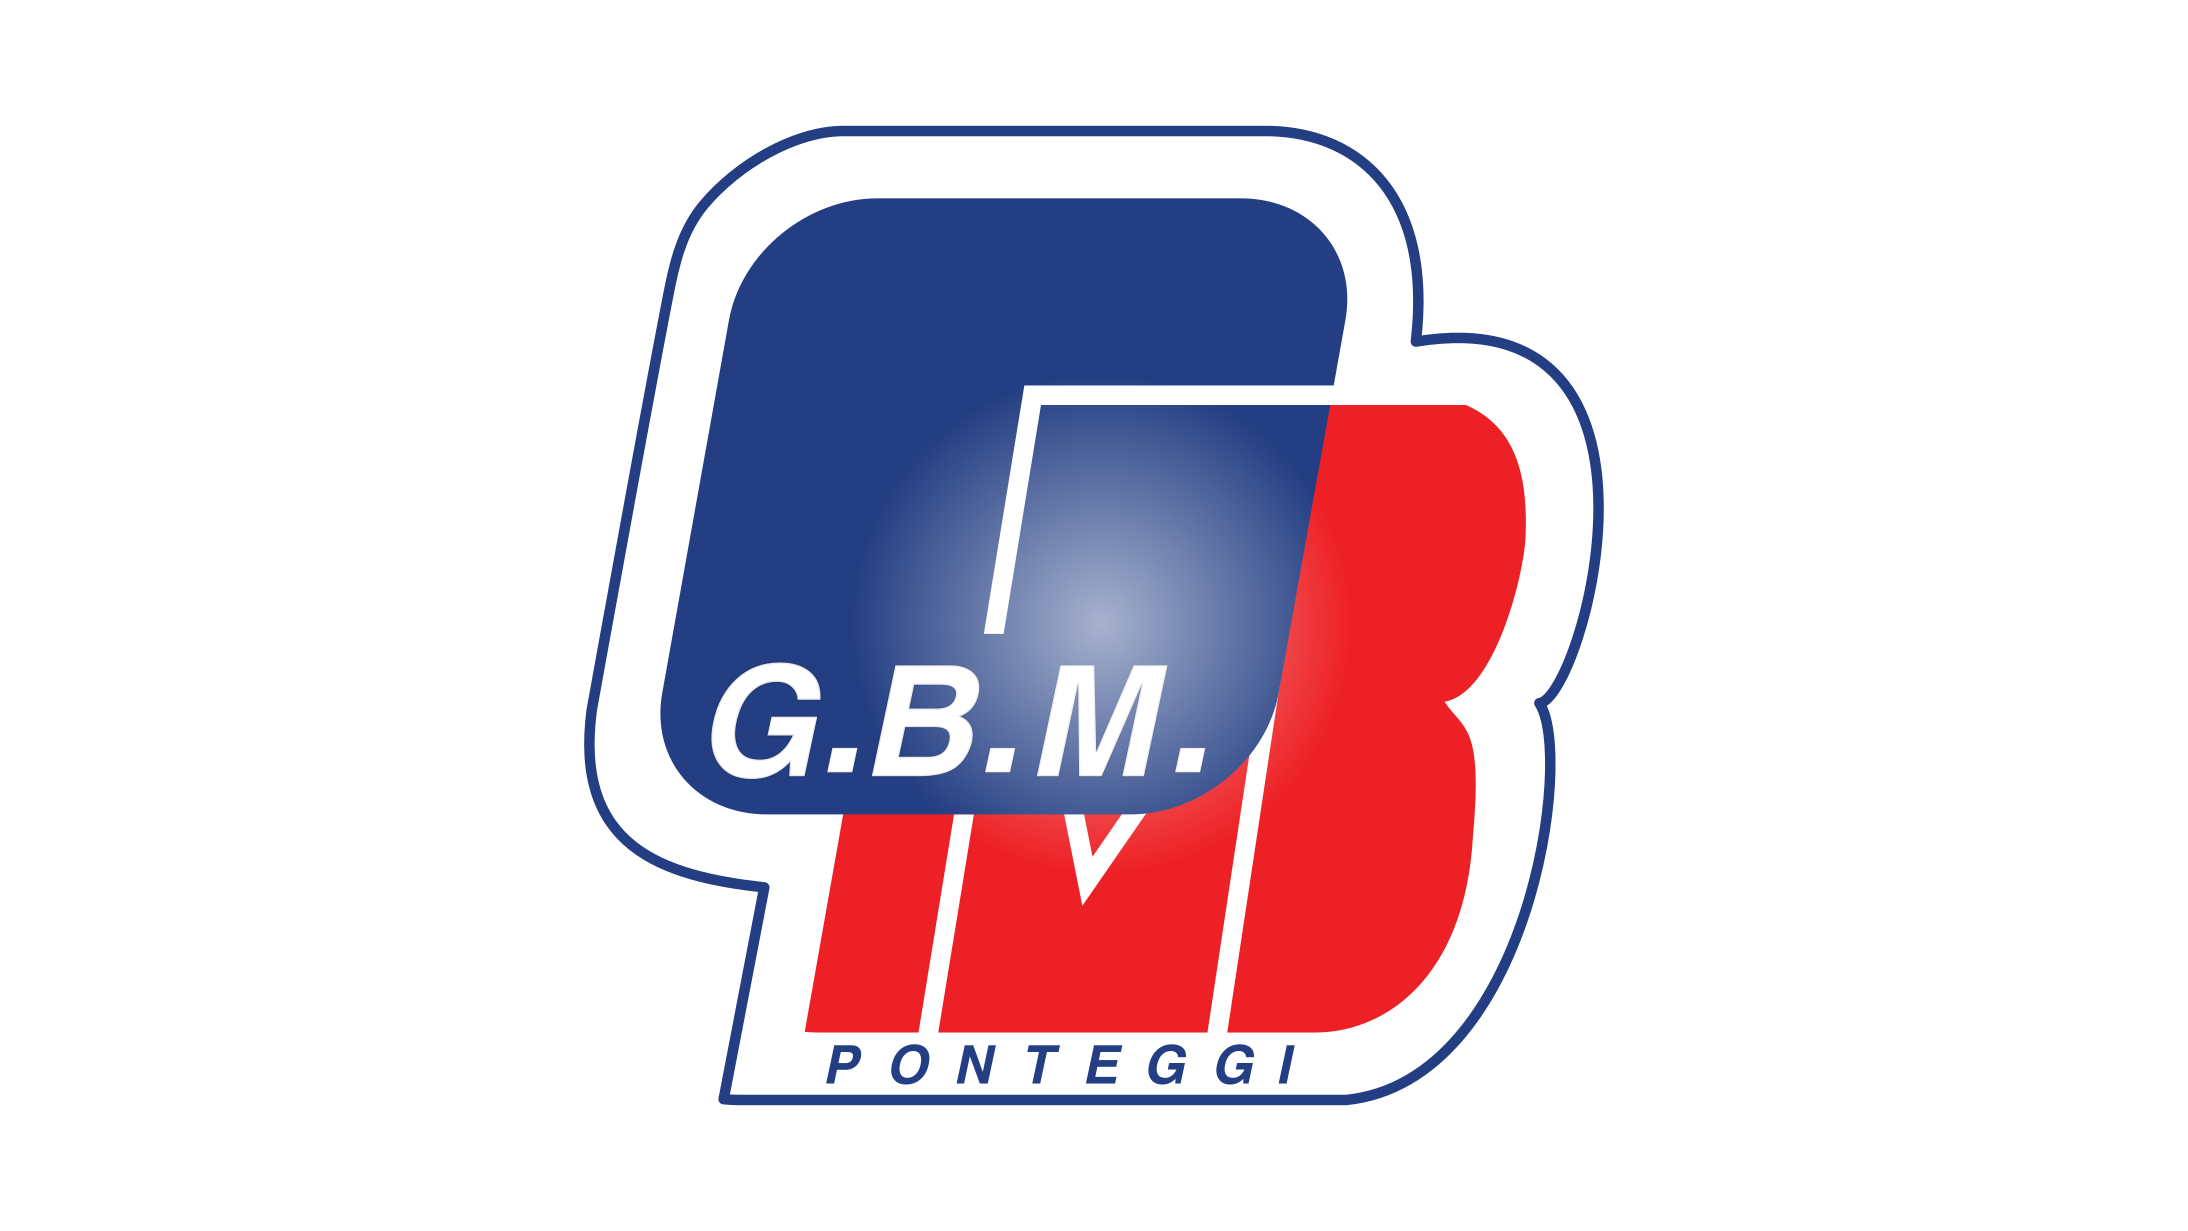 GBM - Evolution of the logo